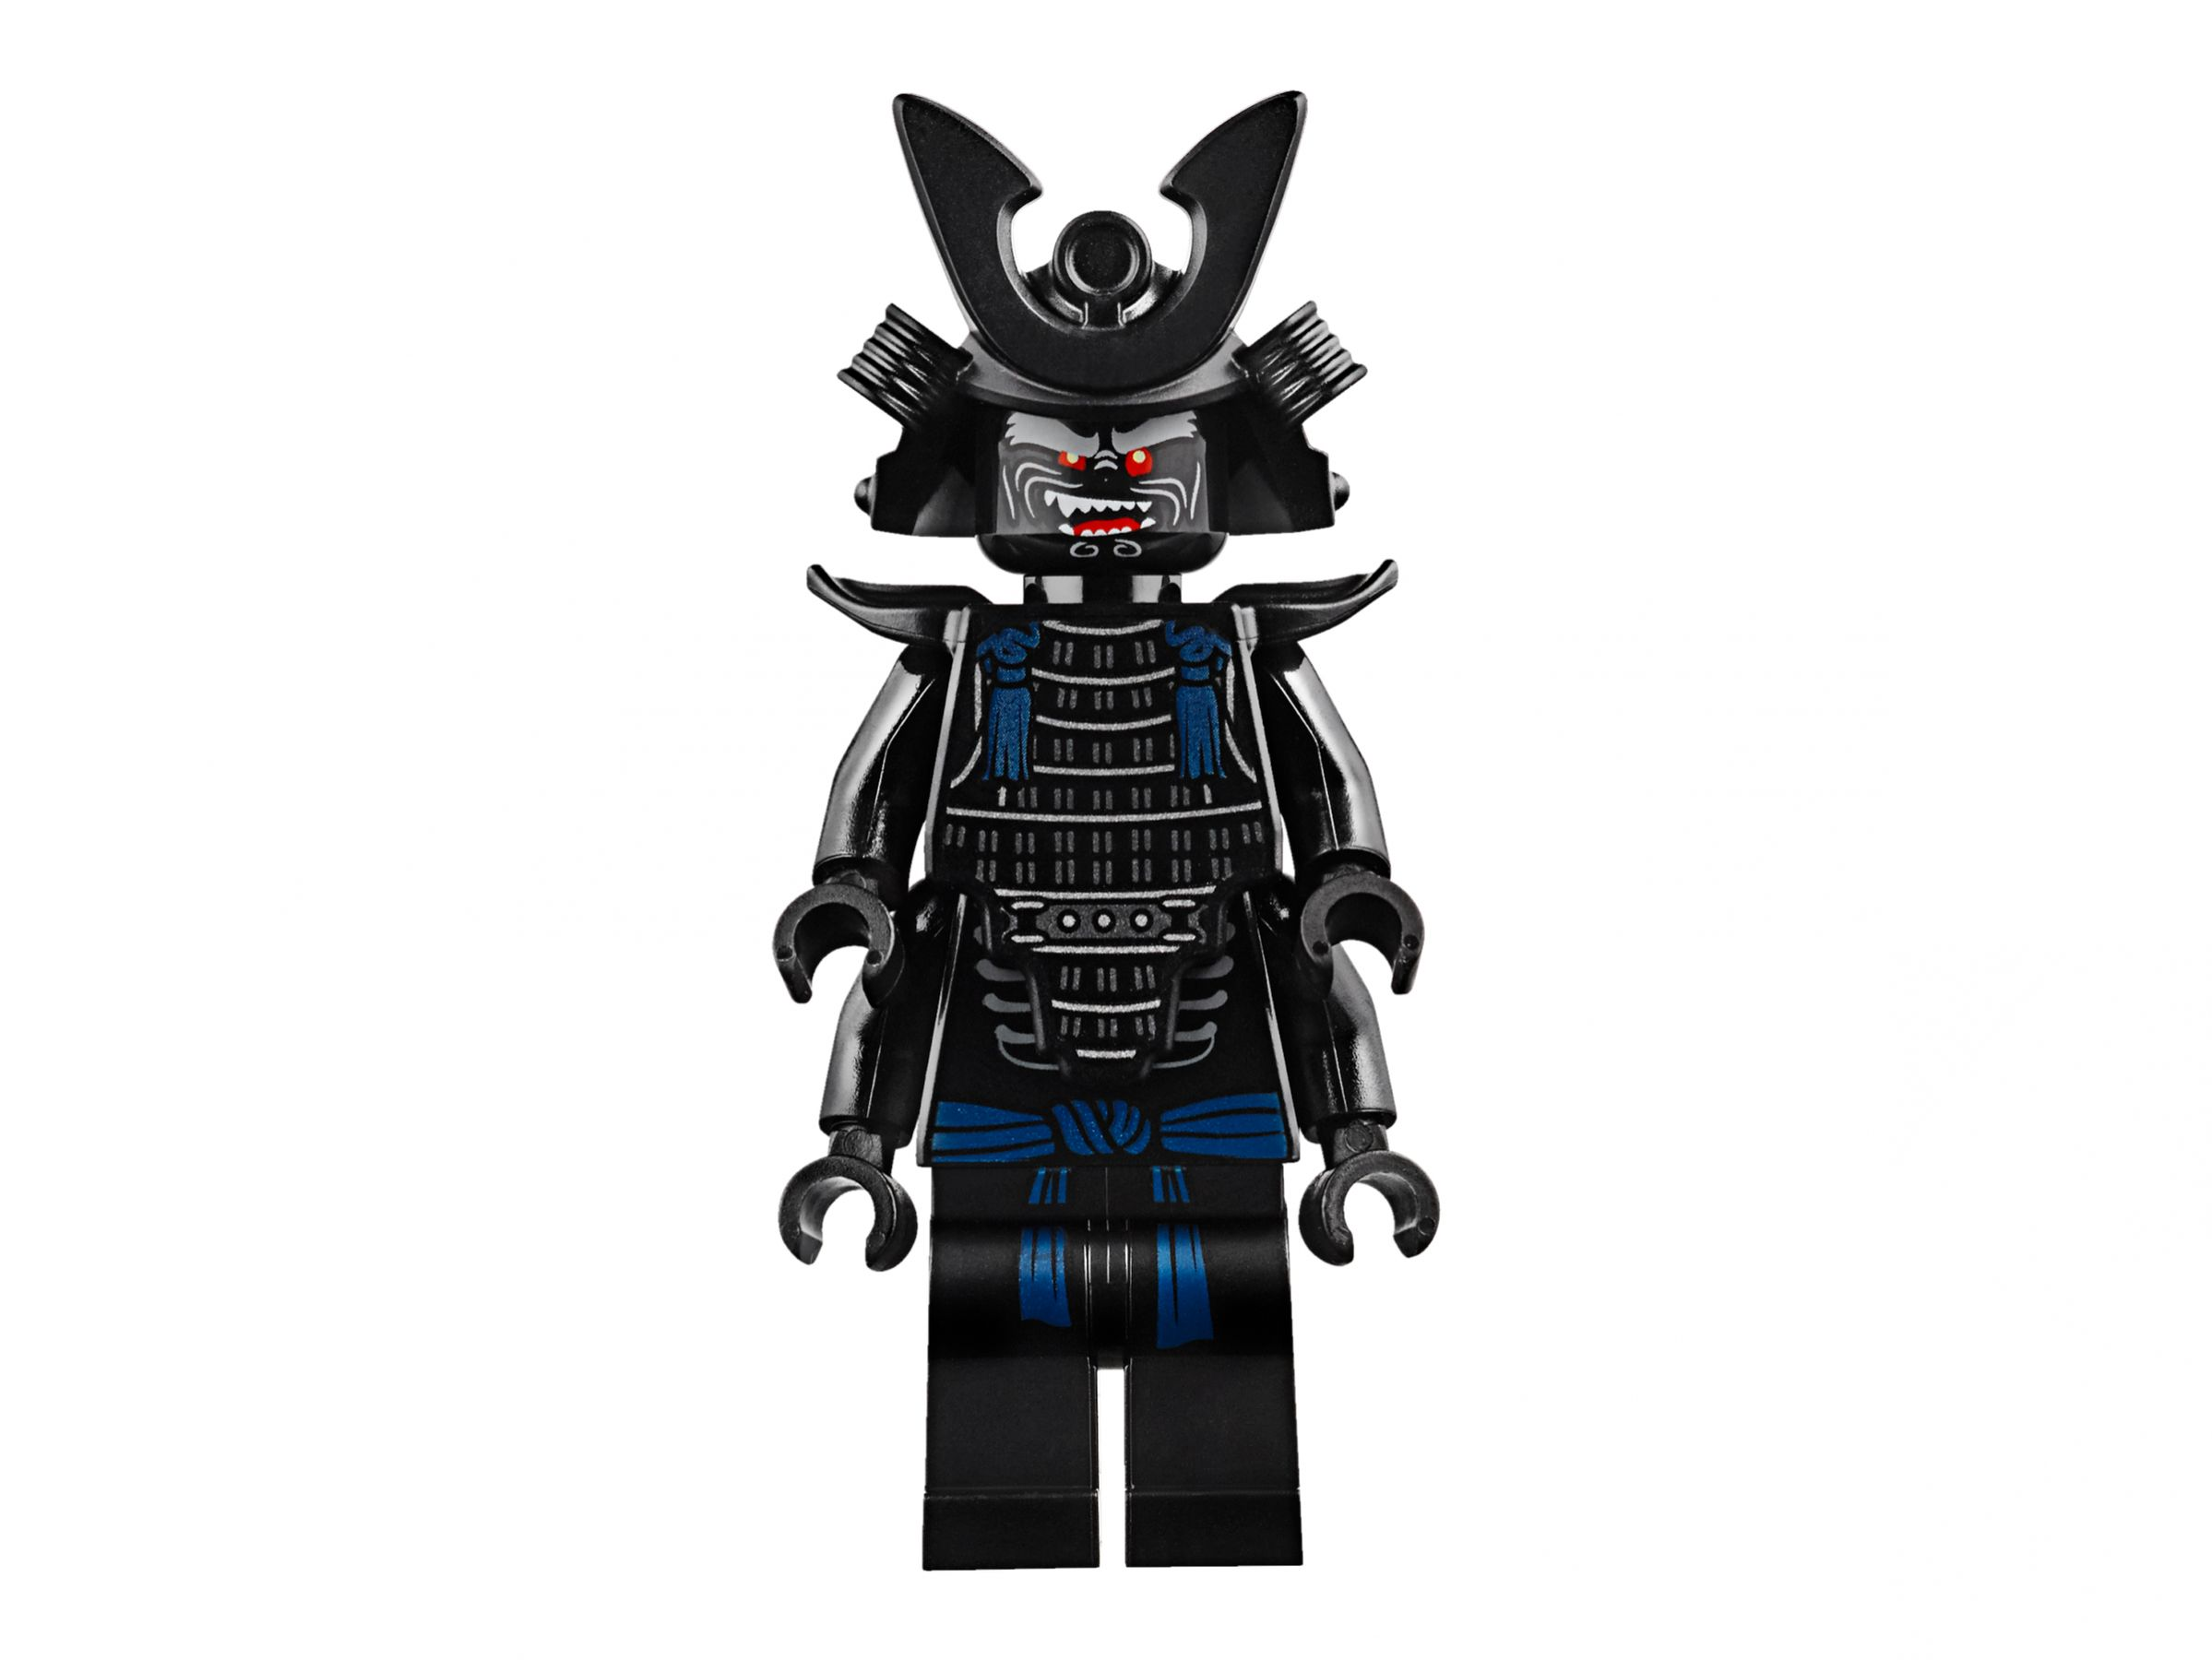 LEGO The LEGO Ninjago Movie 70631 Garmadons Vulkanversteck LEGO_70631_alt7.jpg